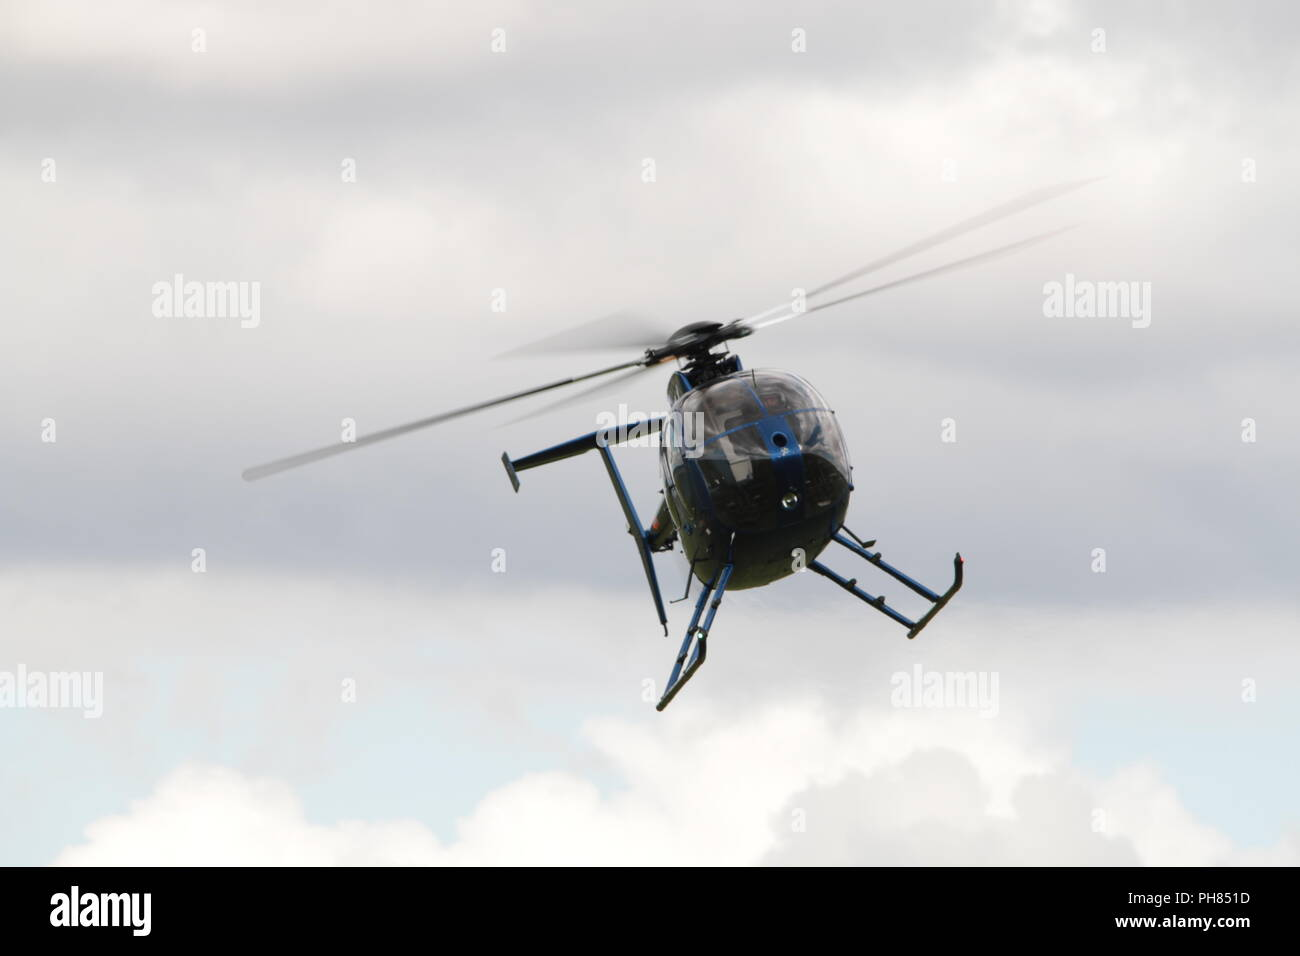 Helicopter coming in to land - Stock Image